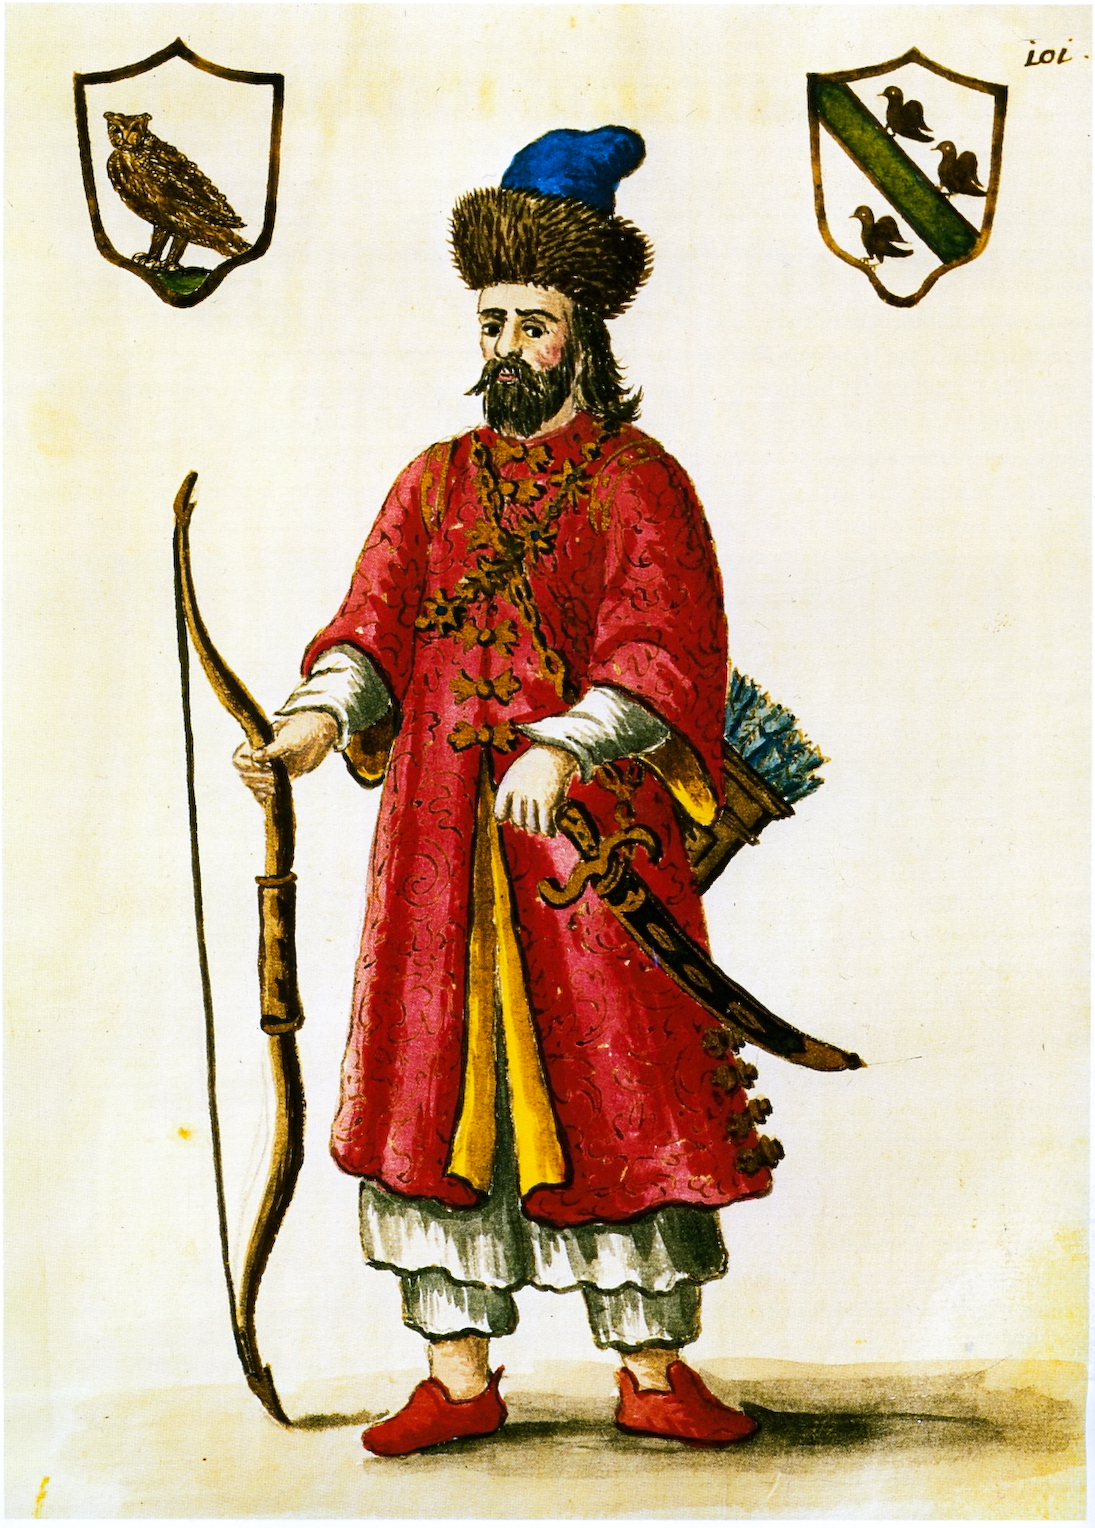 File:Marco Polo - costume tartare.jpg - Wikipedia, the free ...